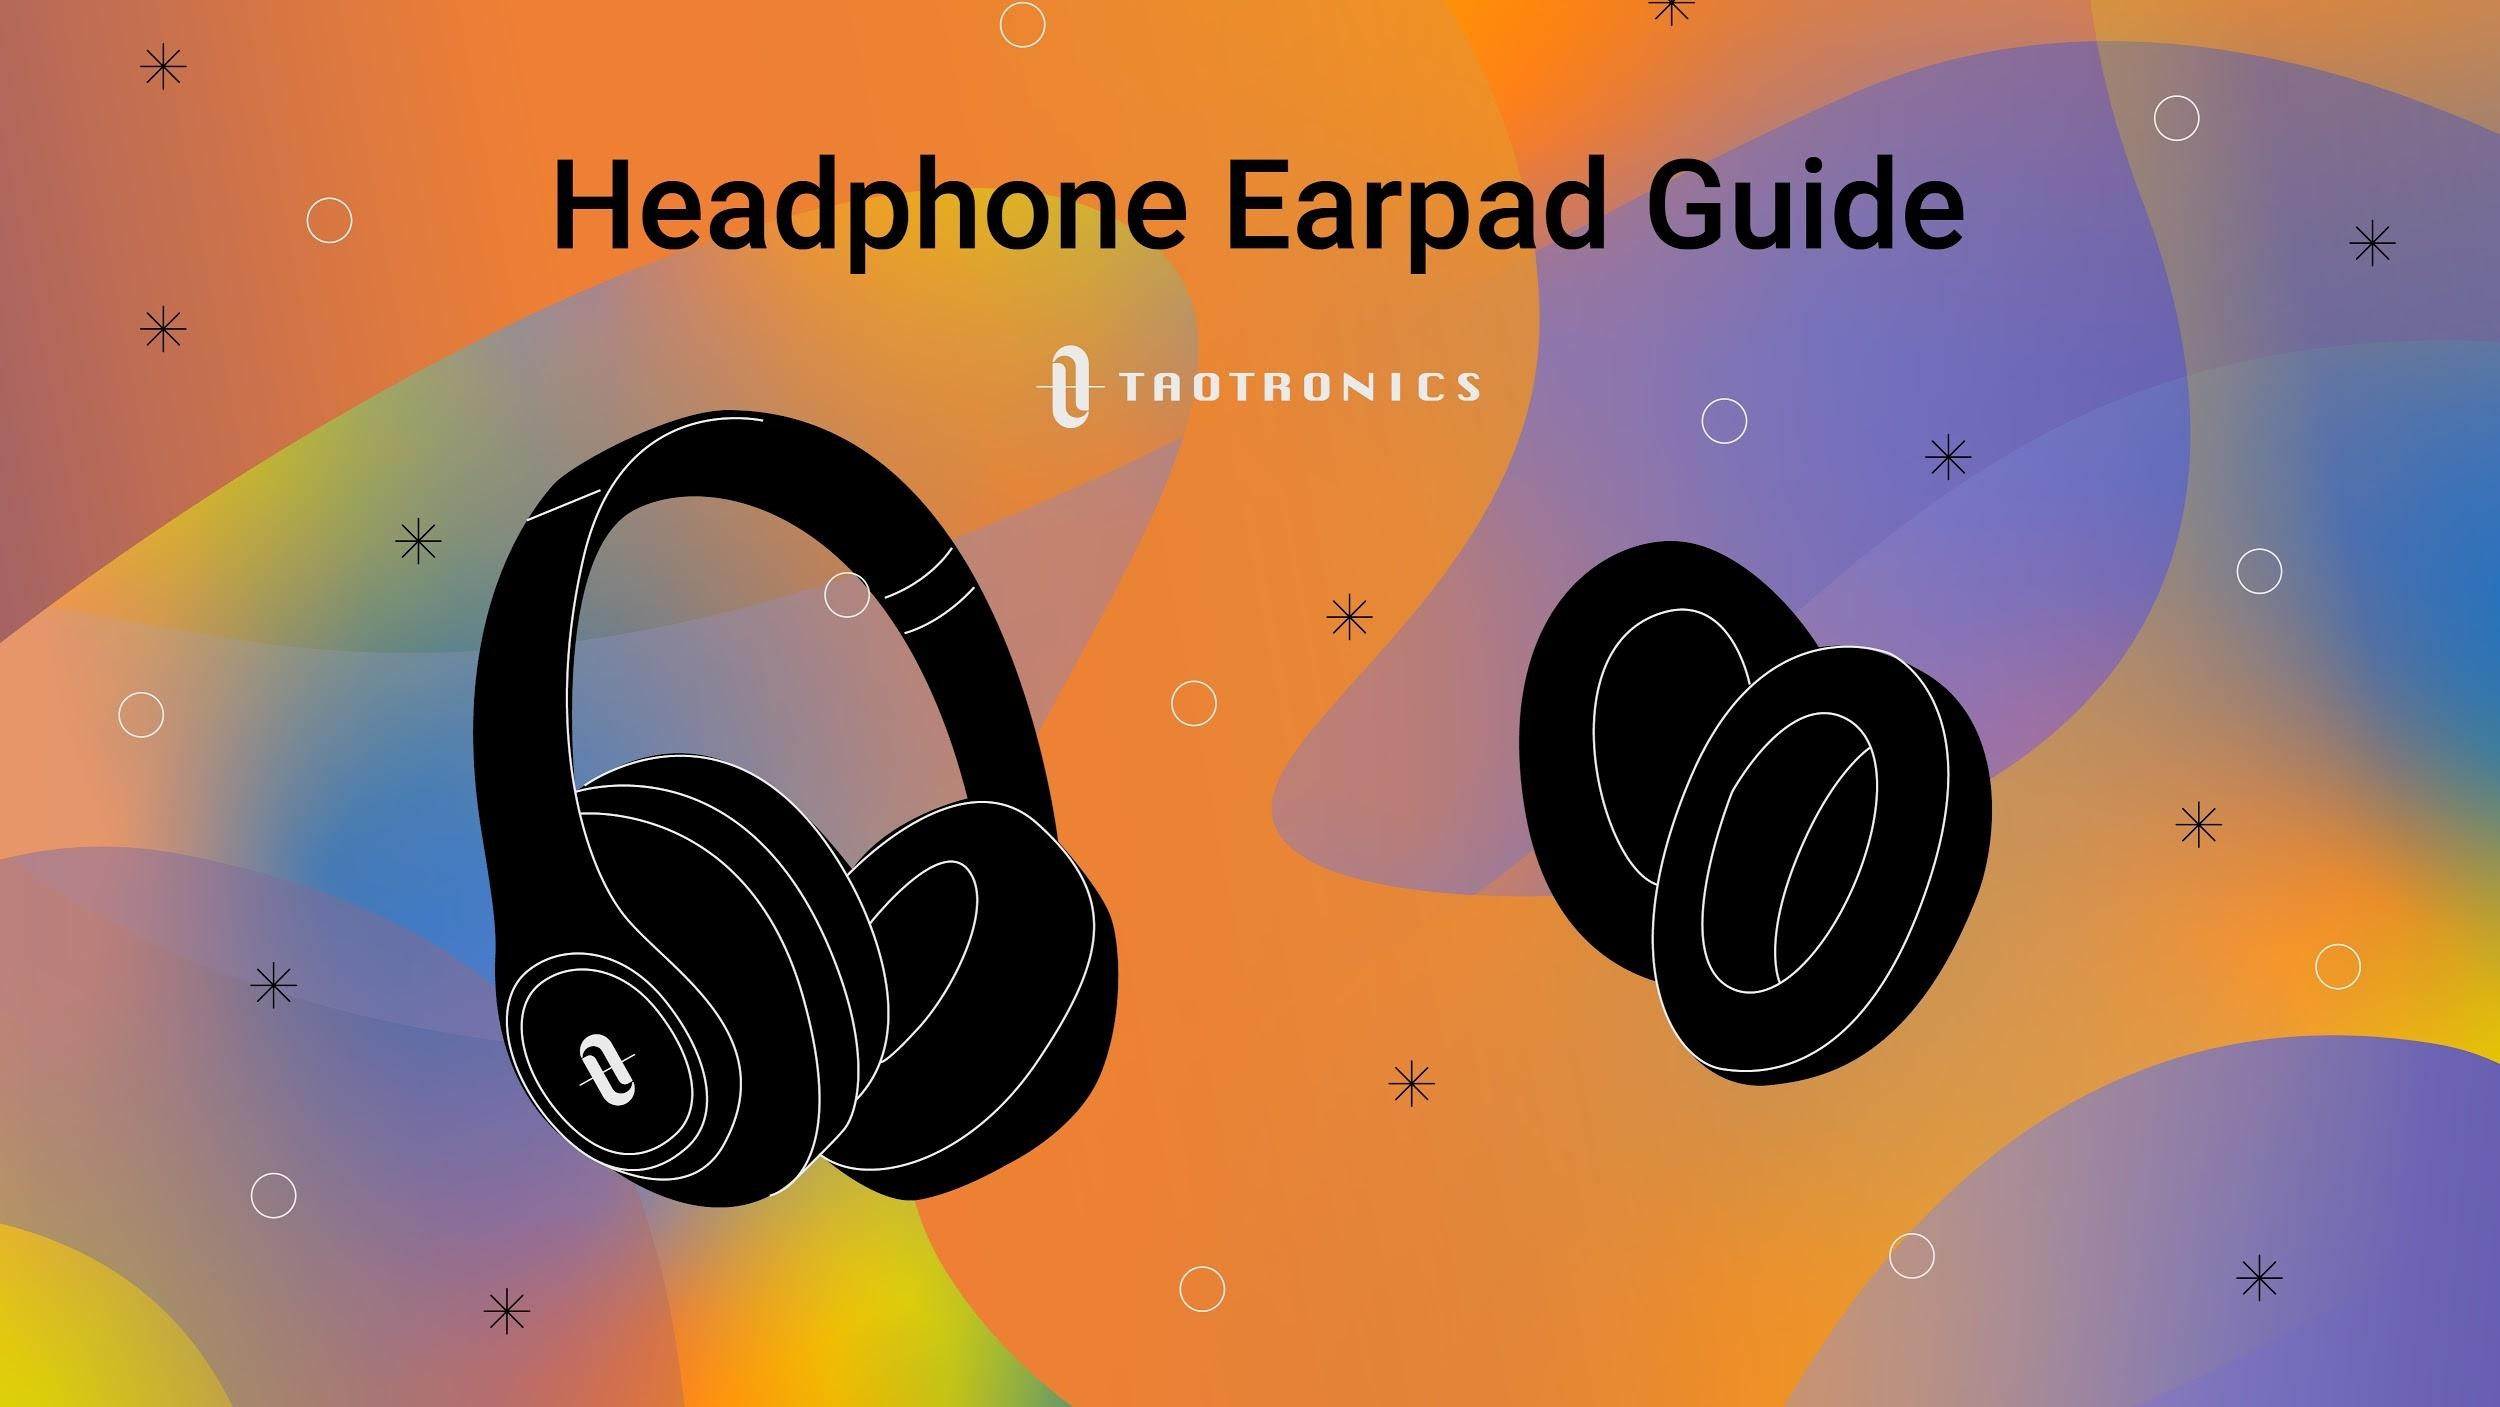 TaoTronics Blog - 20210326 Headphone Earpads Full Guide